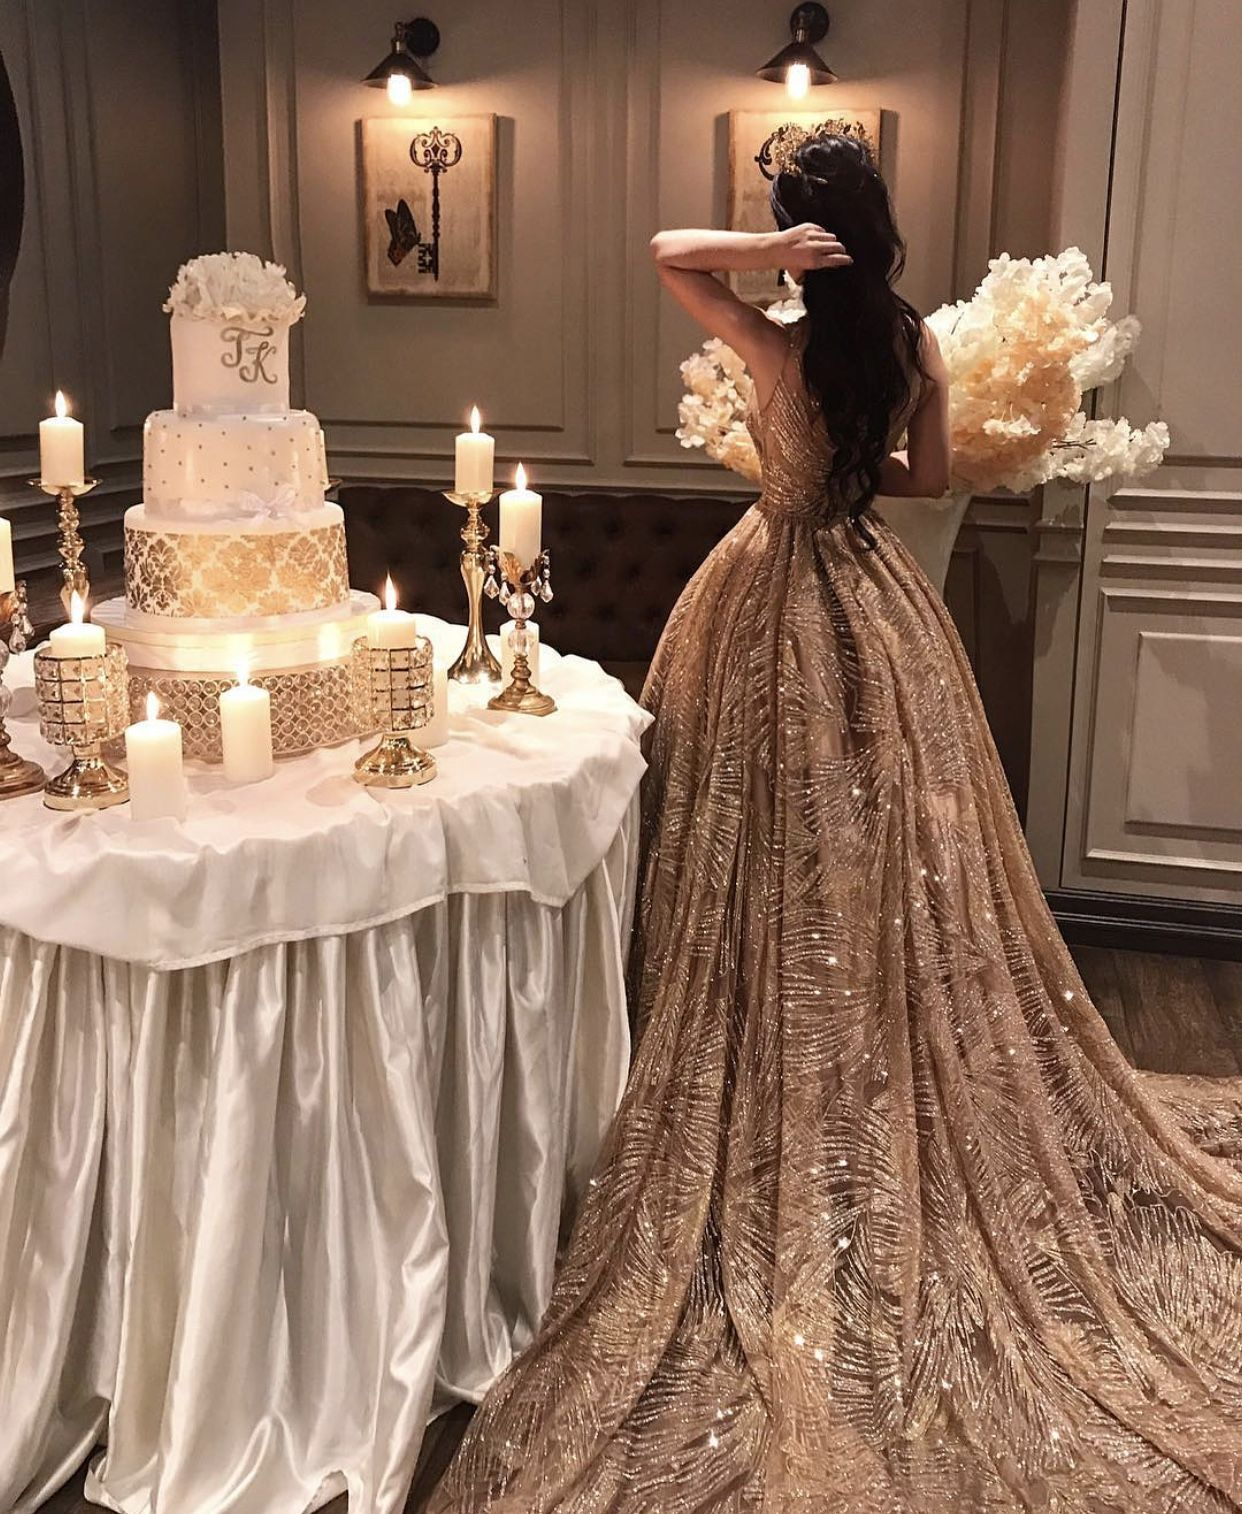 Pin by kaí rosè on cindrellatime pinterest quinceanera ideas